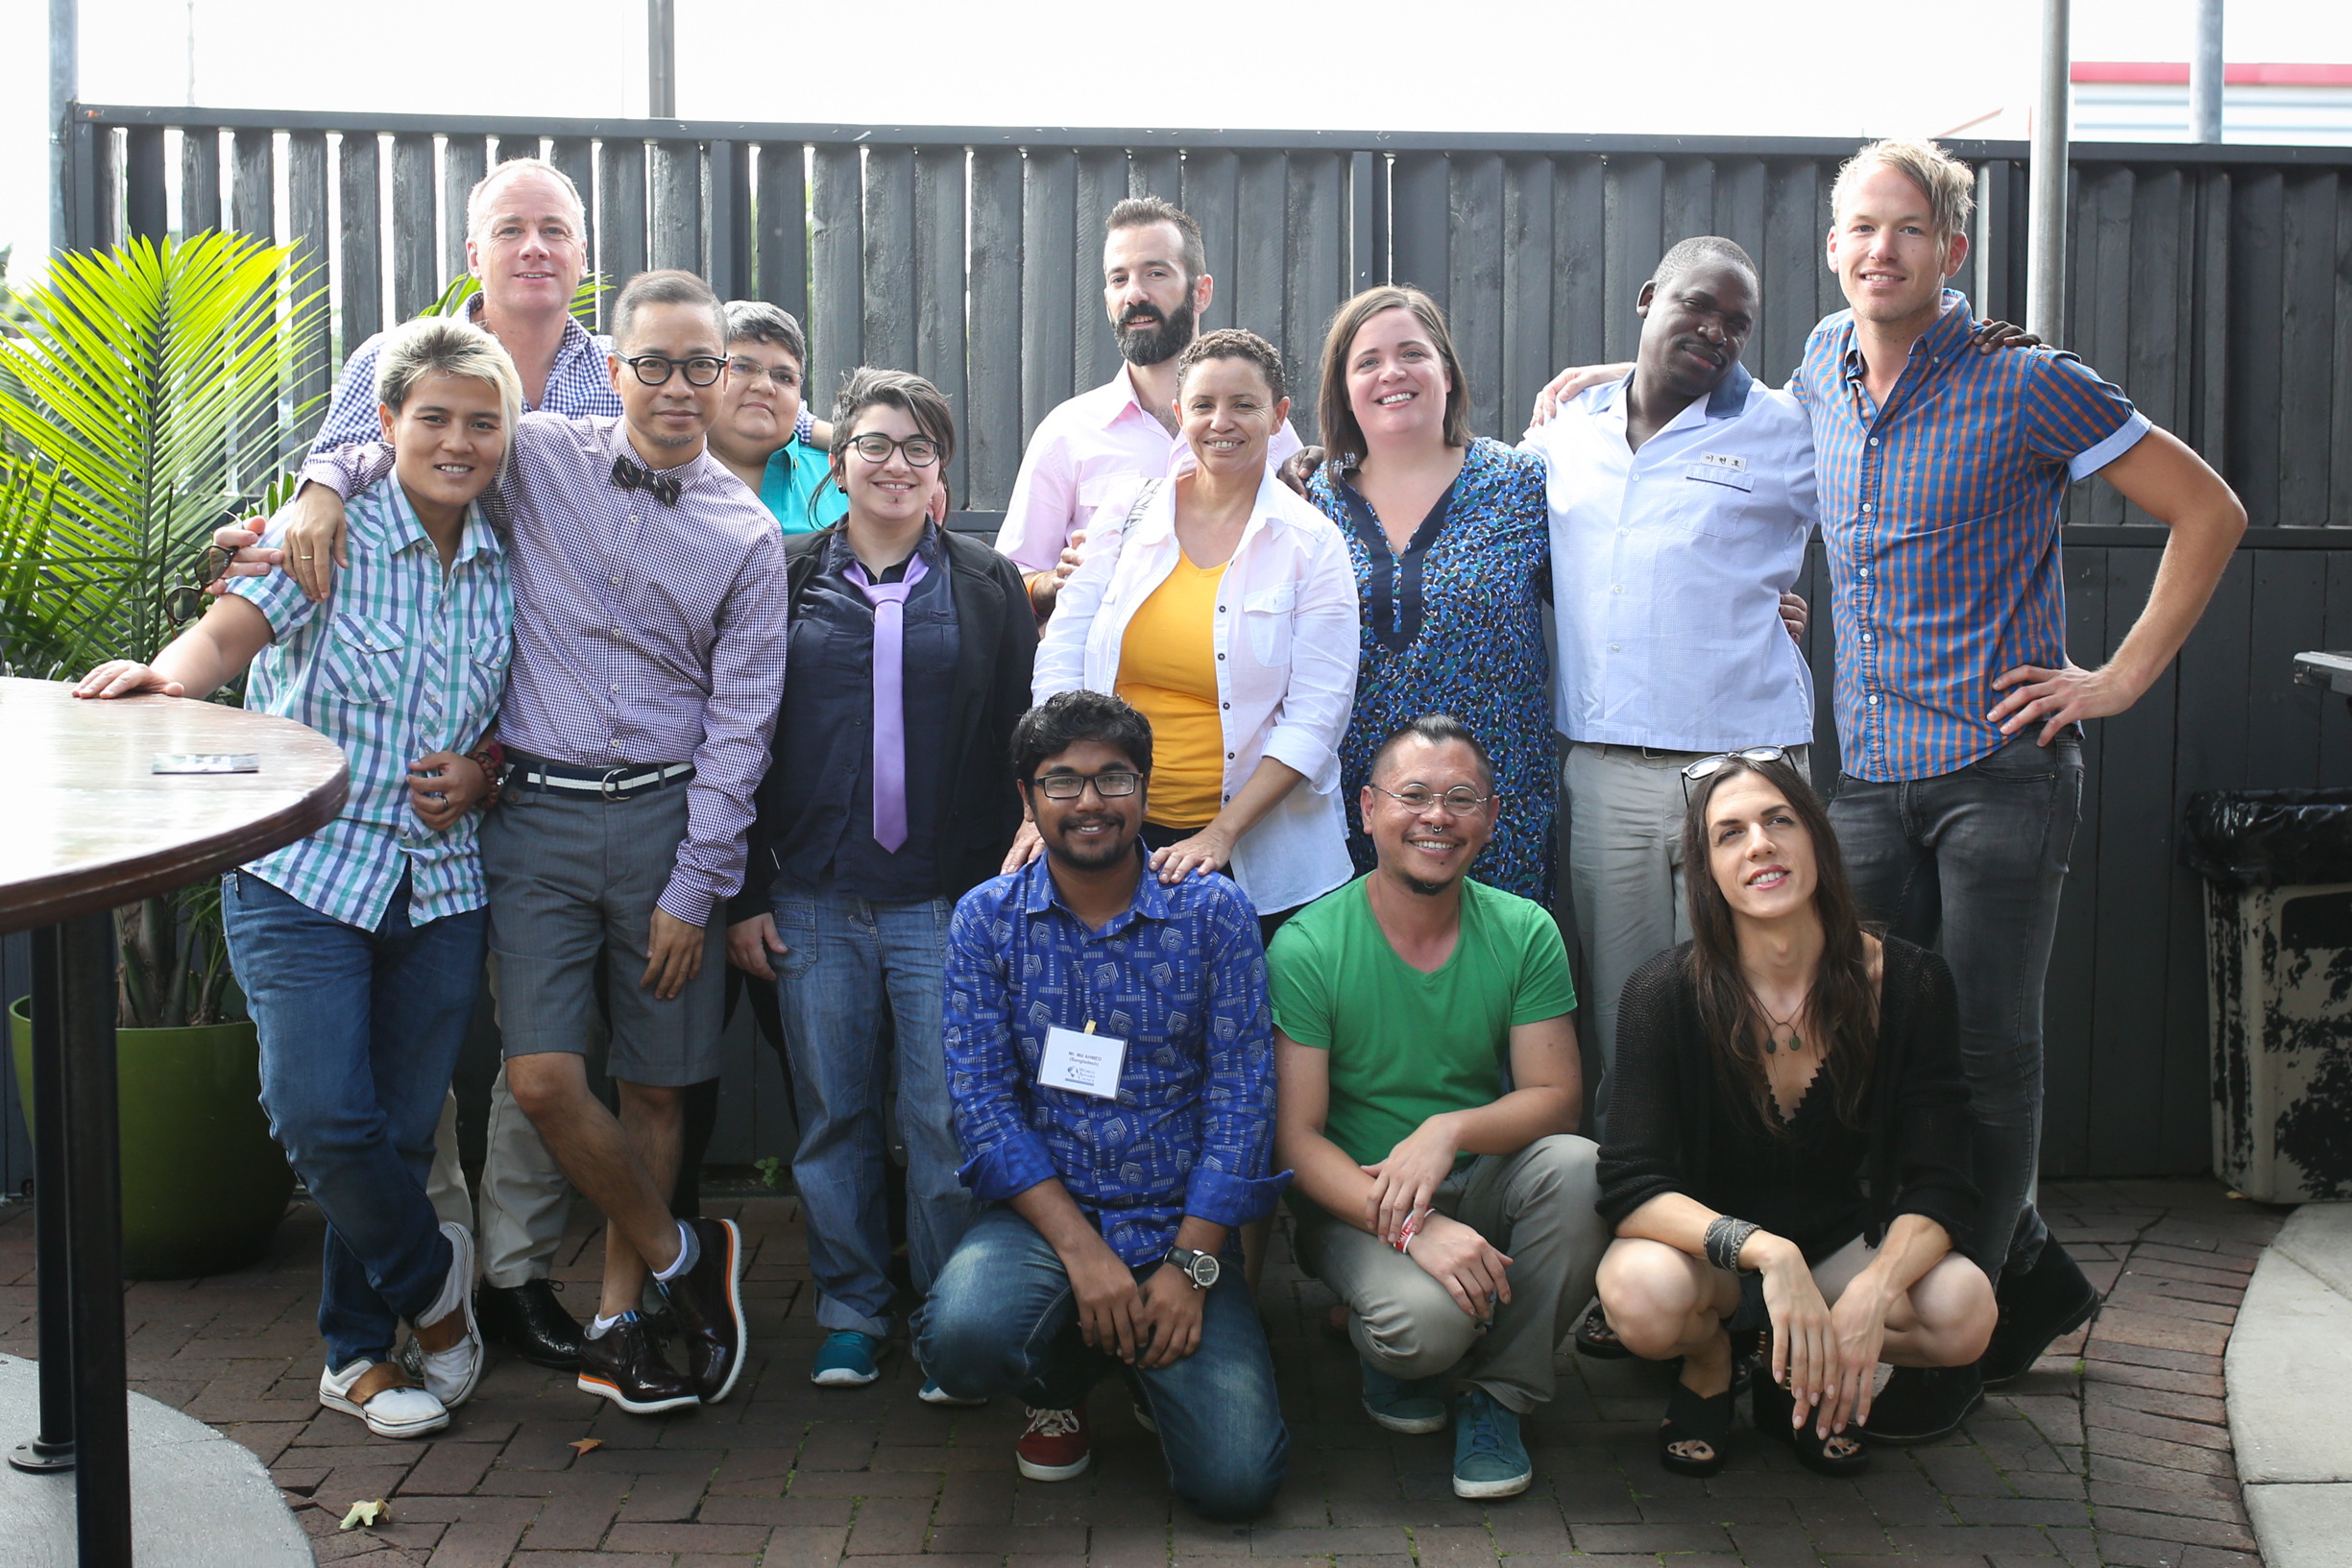 FEVA International LGBT Conference Chill Bar 8.2015 (842 of 13).jpg